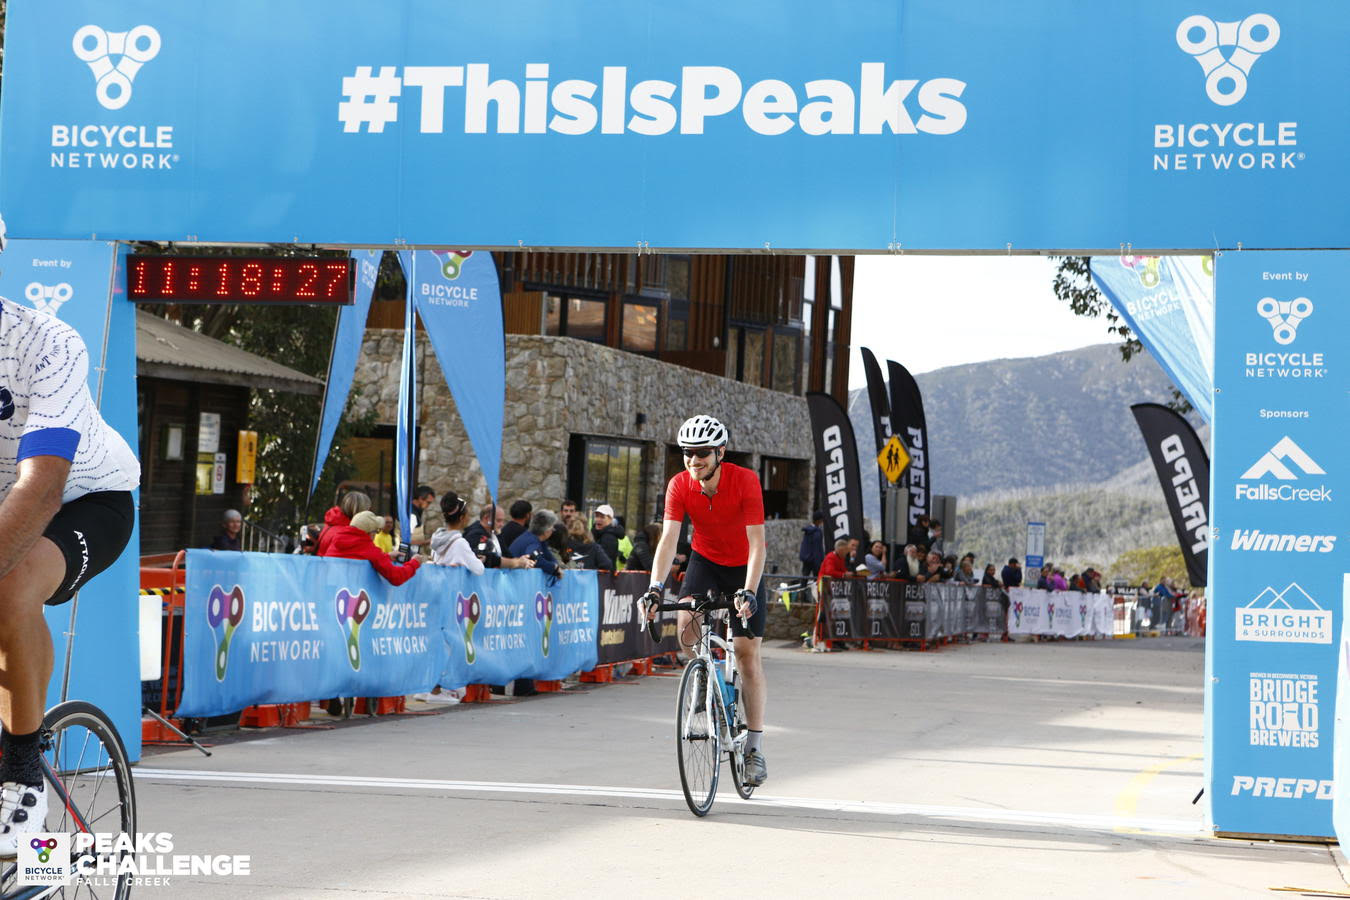 Nathan Sgarlata, doing what he loves – riding up mountains on his road bike